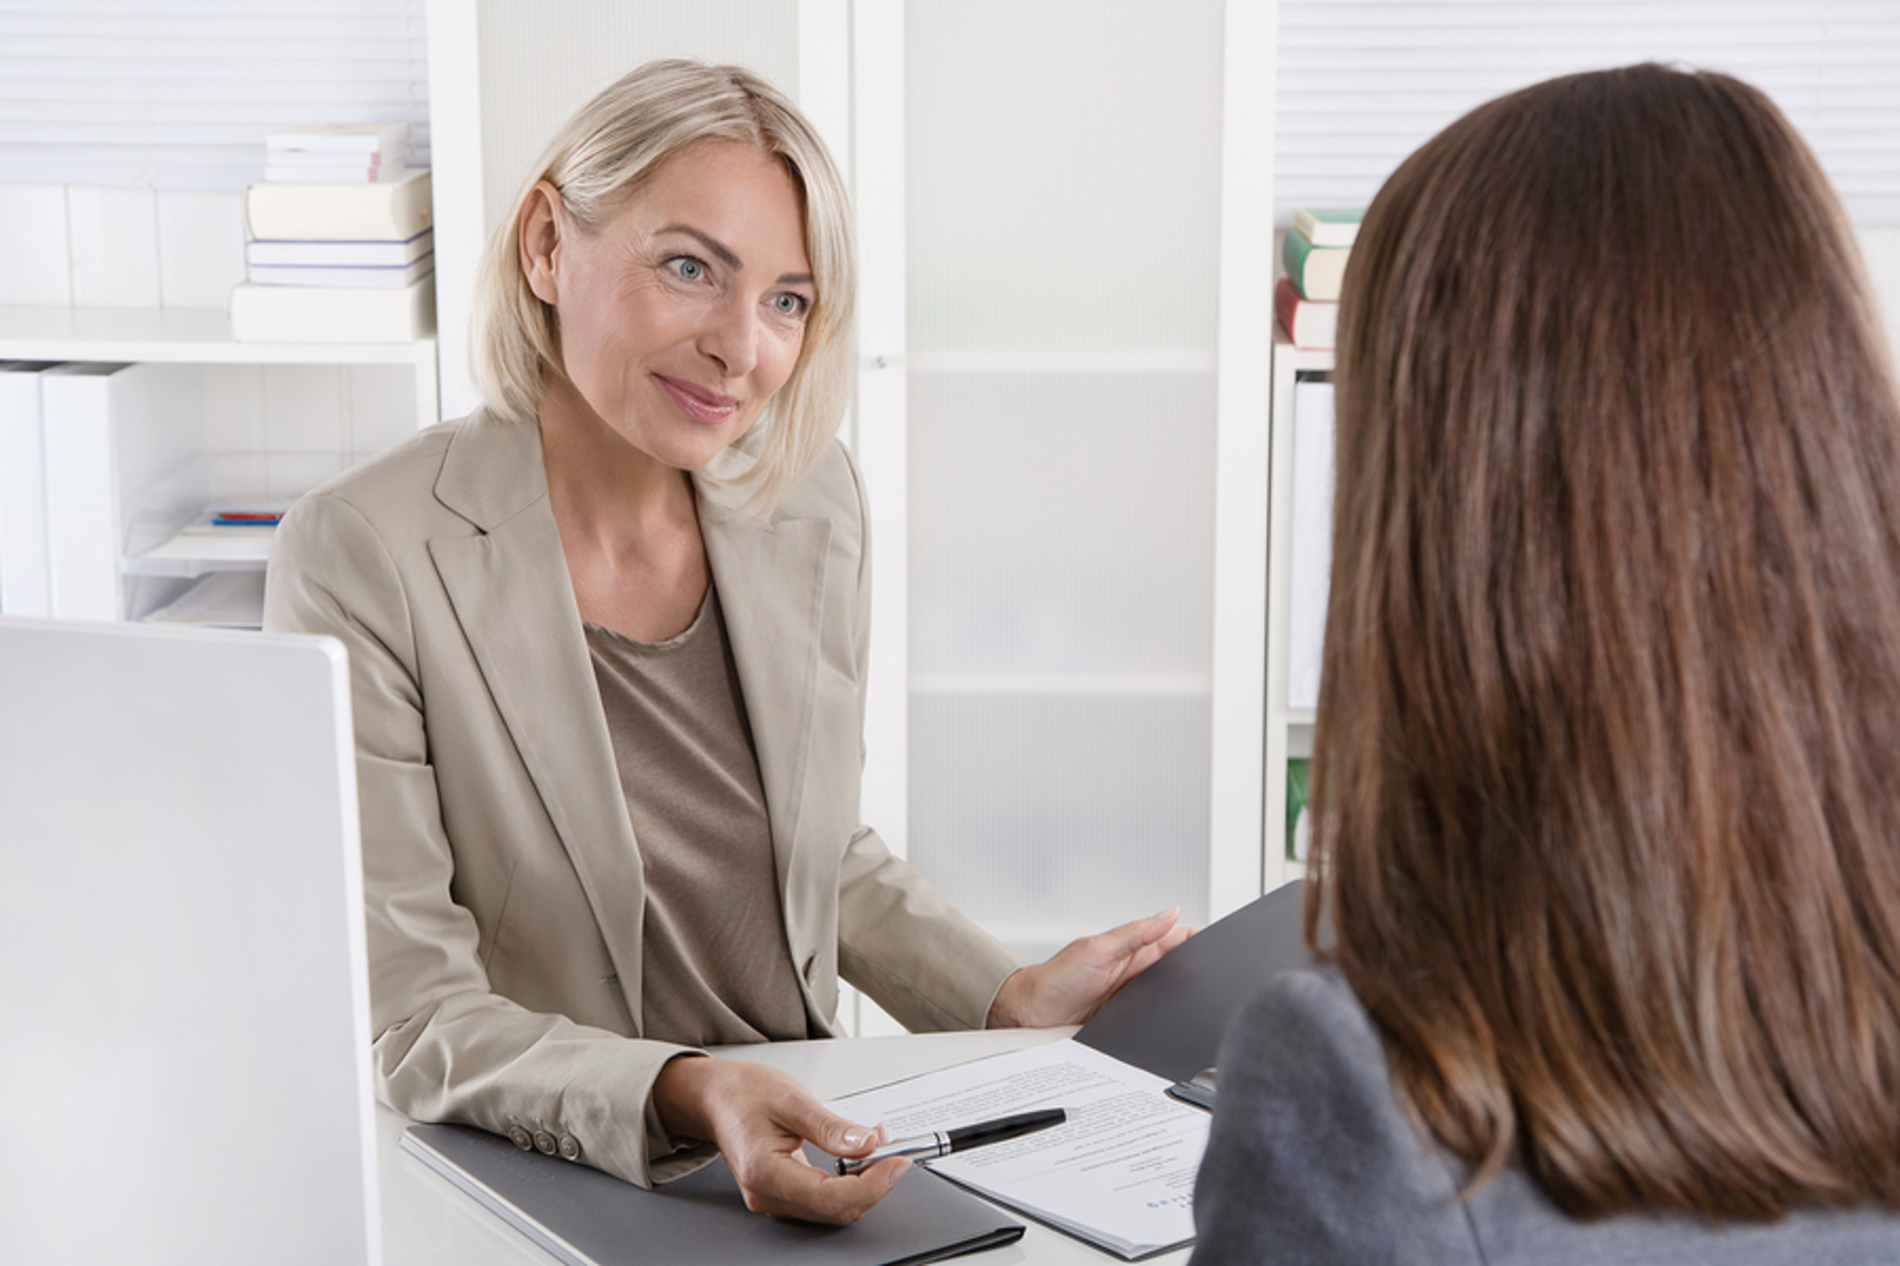 Woman financial services professional discussing paperwork with a customer.